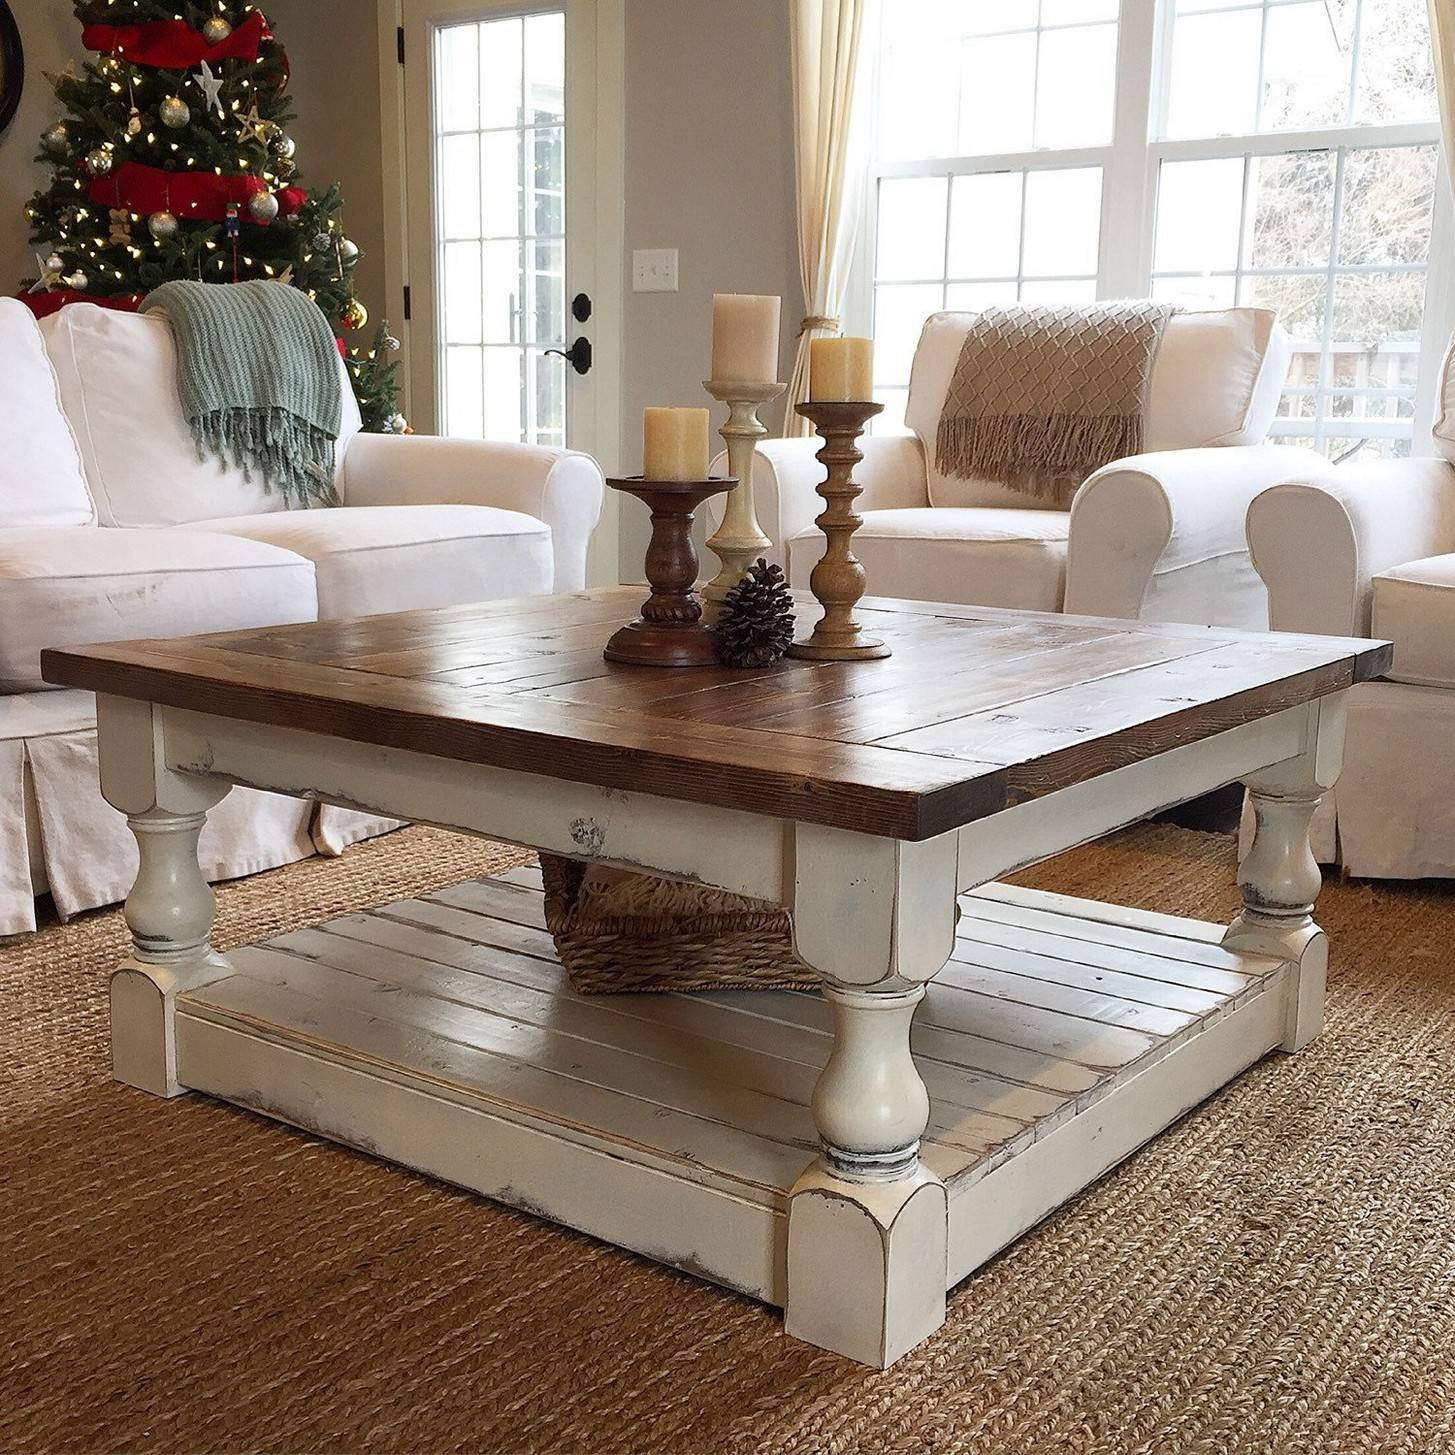 Furniture: Farmhouse Coffee Table | Wayfair Coffee Tables | Rustic in Farmhouse Coffee Tables (Image 11 of 15)